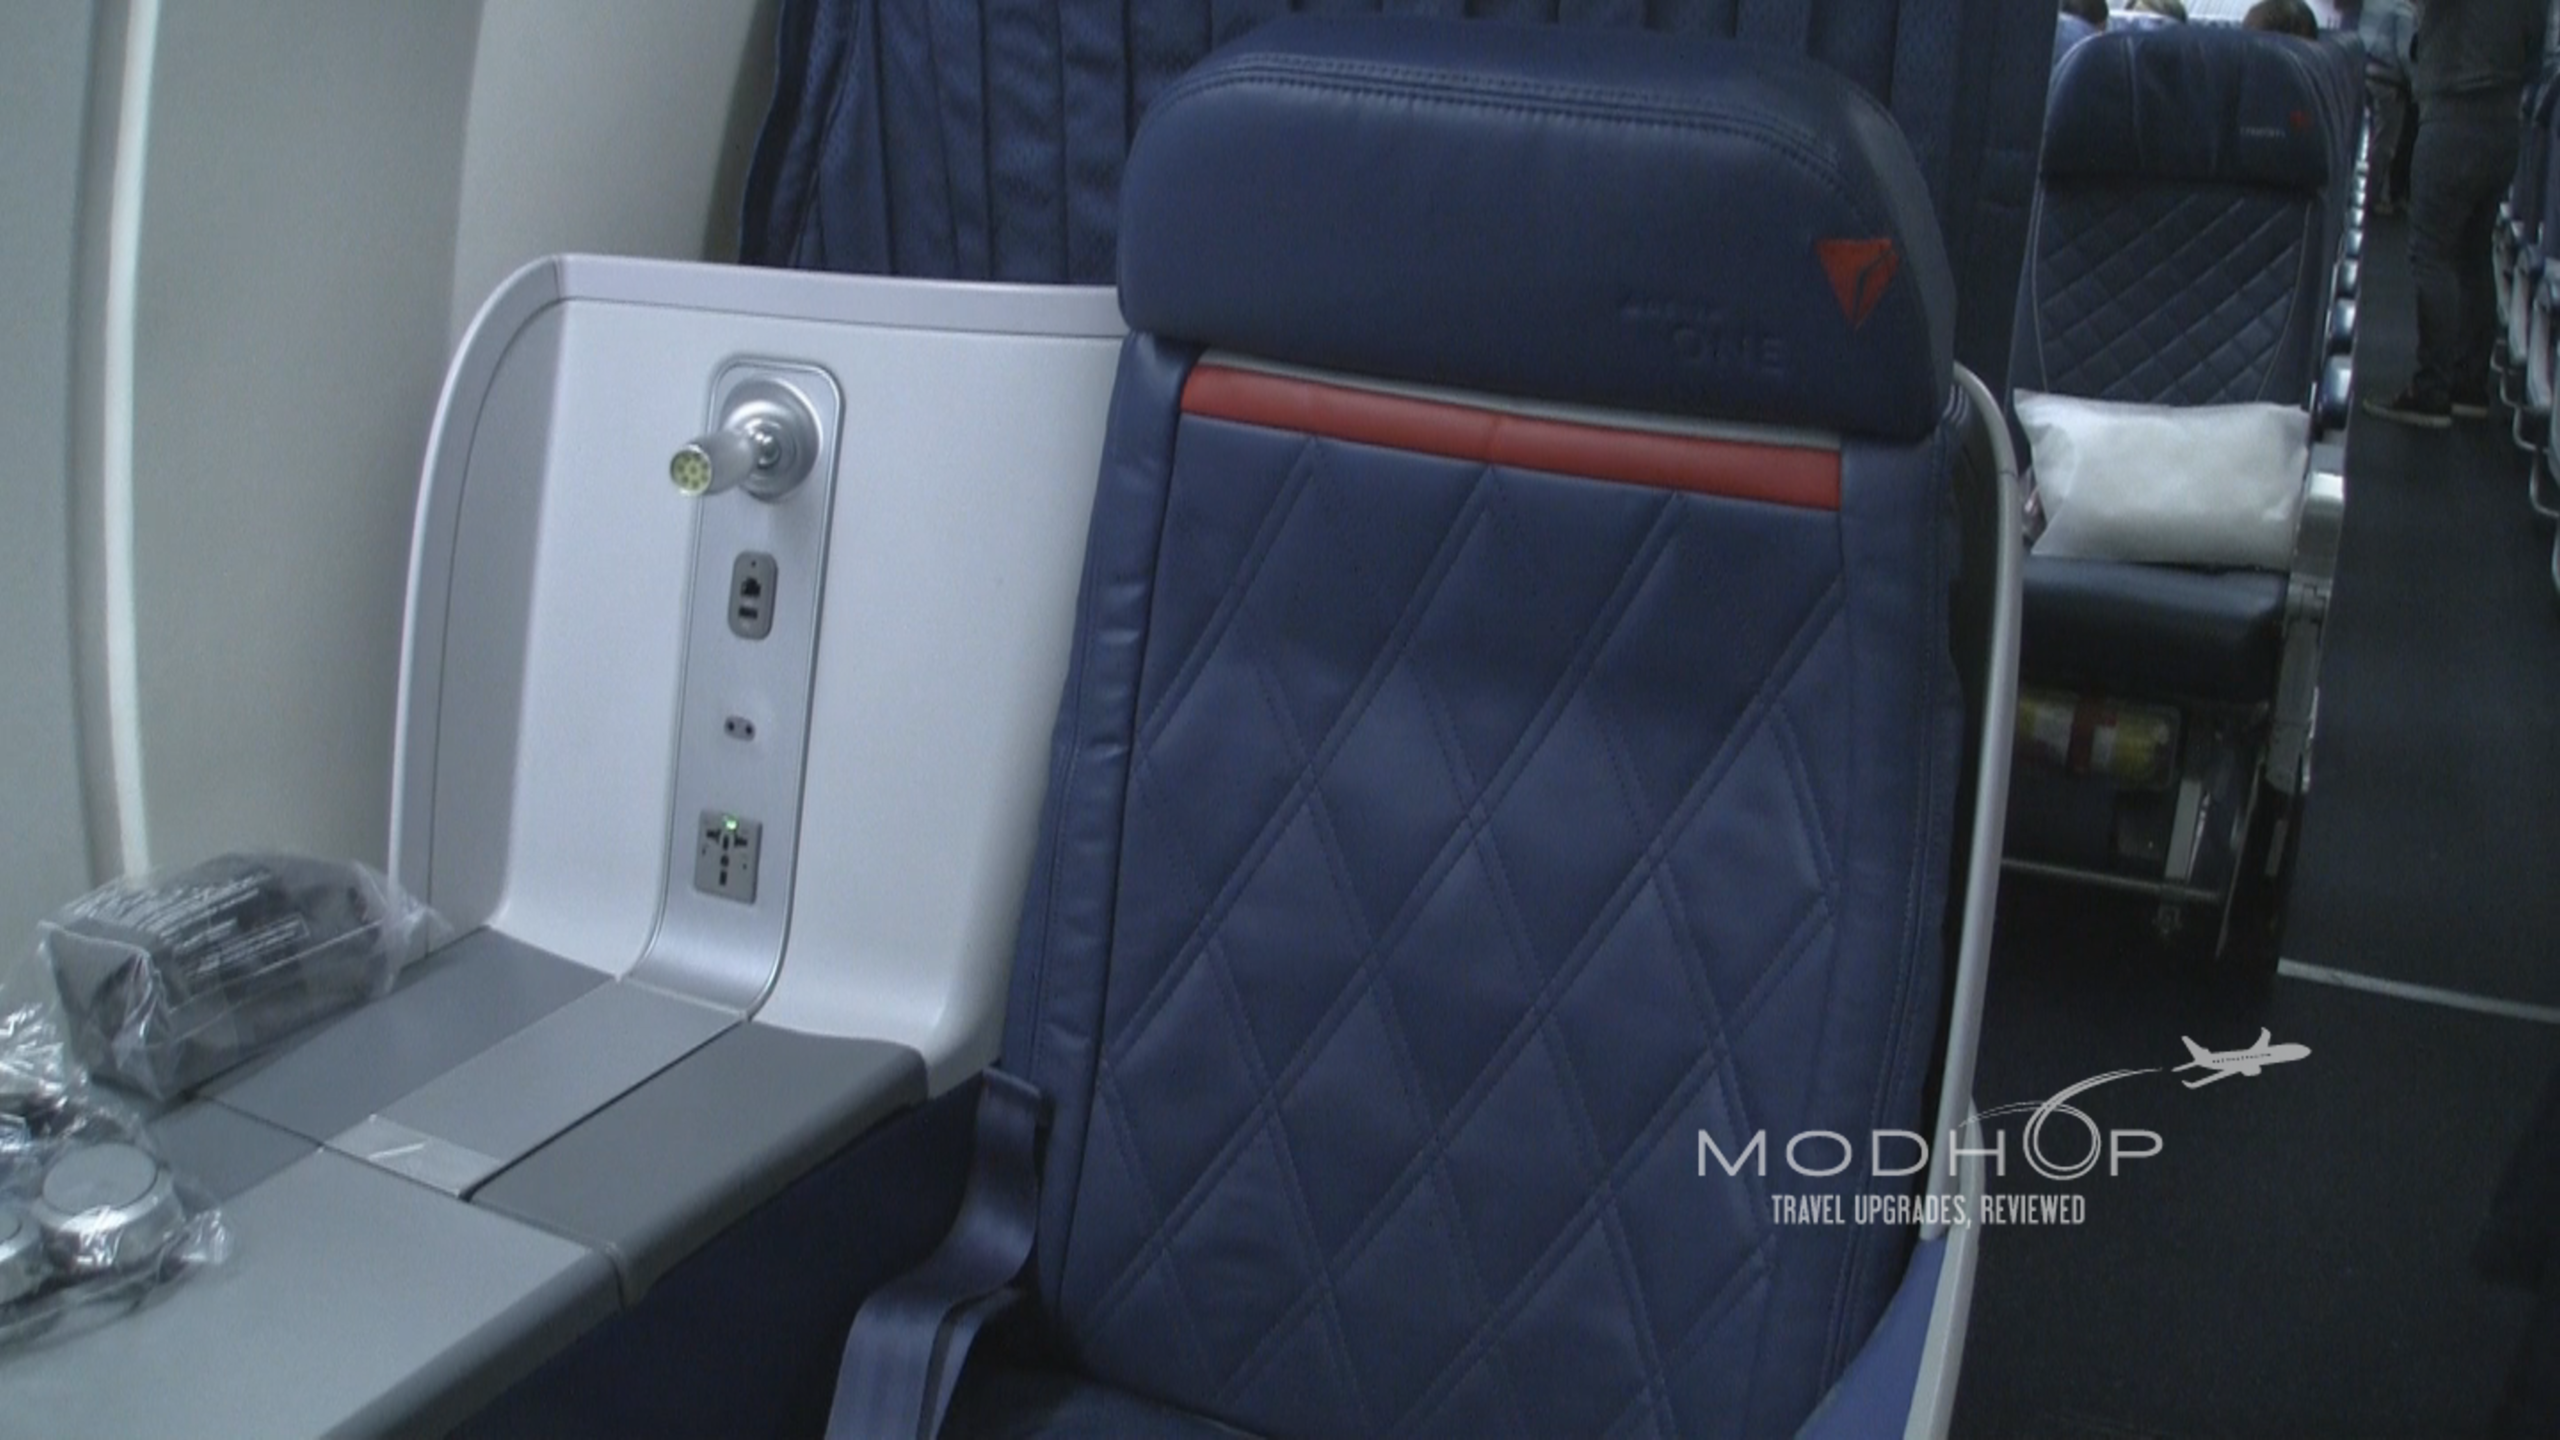 Room to move in Delta One seats